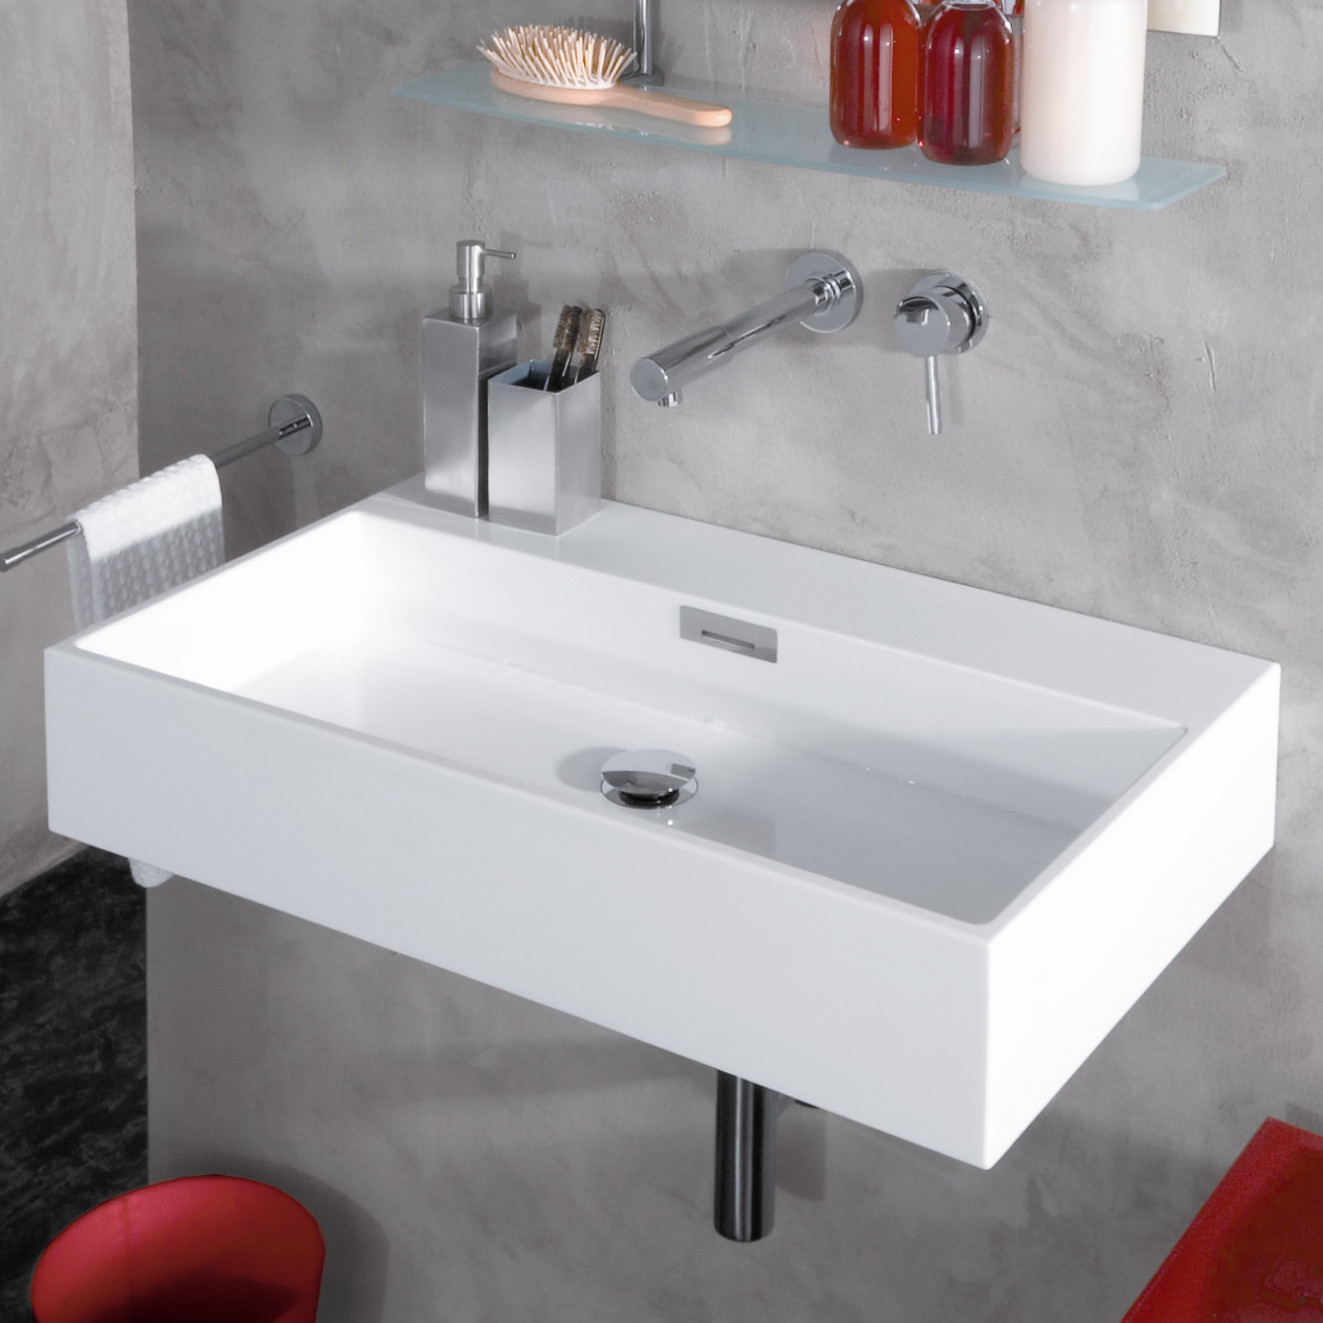 Contemporary bathroom sink faucets - Faucets: The Best Ideas for ...